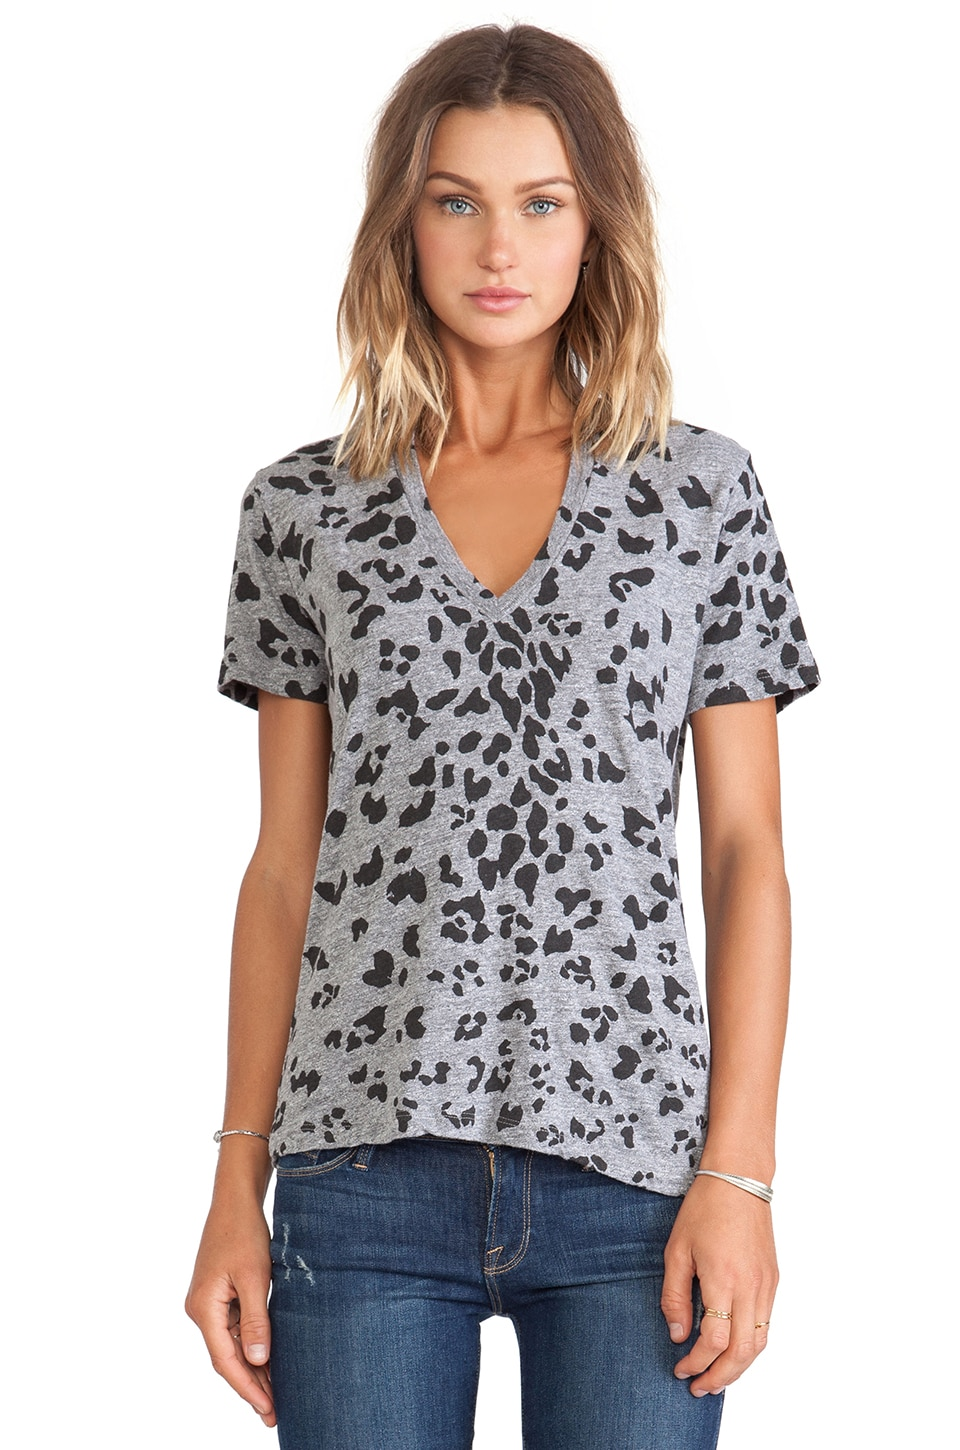 MONROW Oversized Leopard Print Tee in Granite